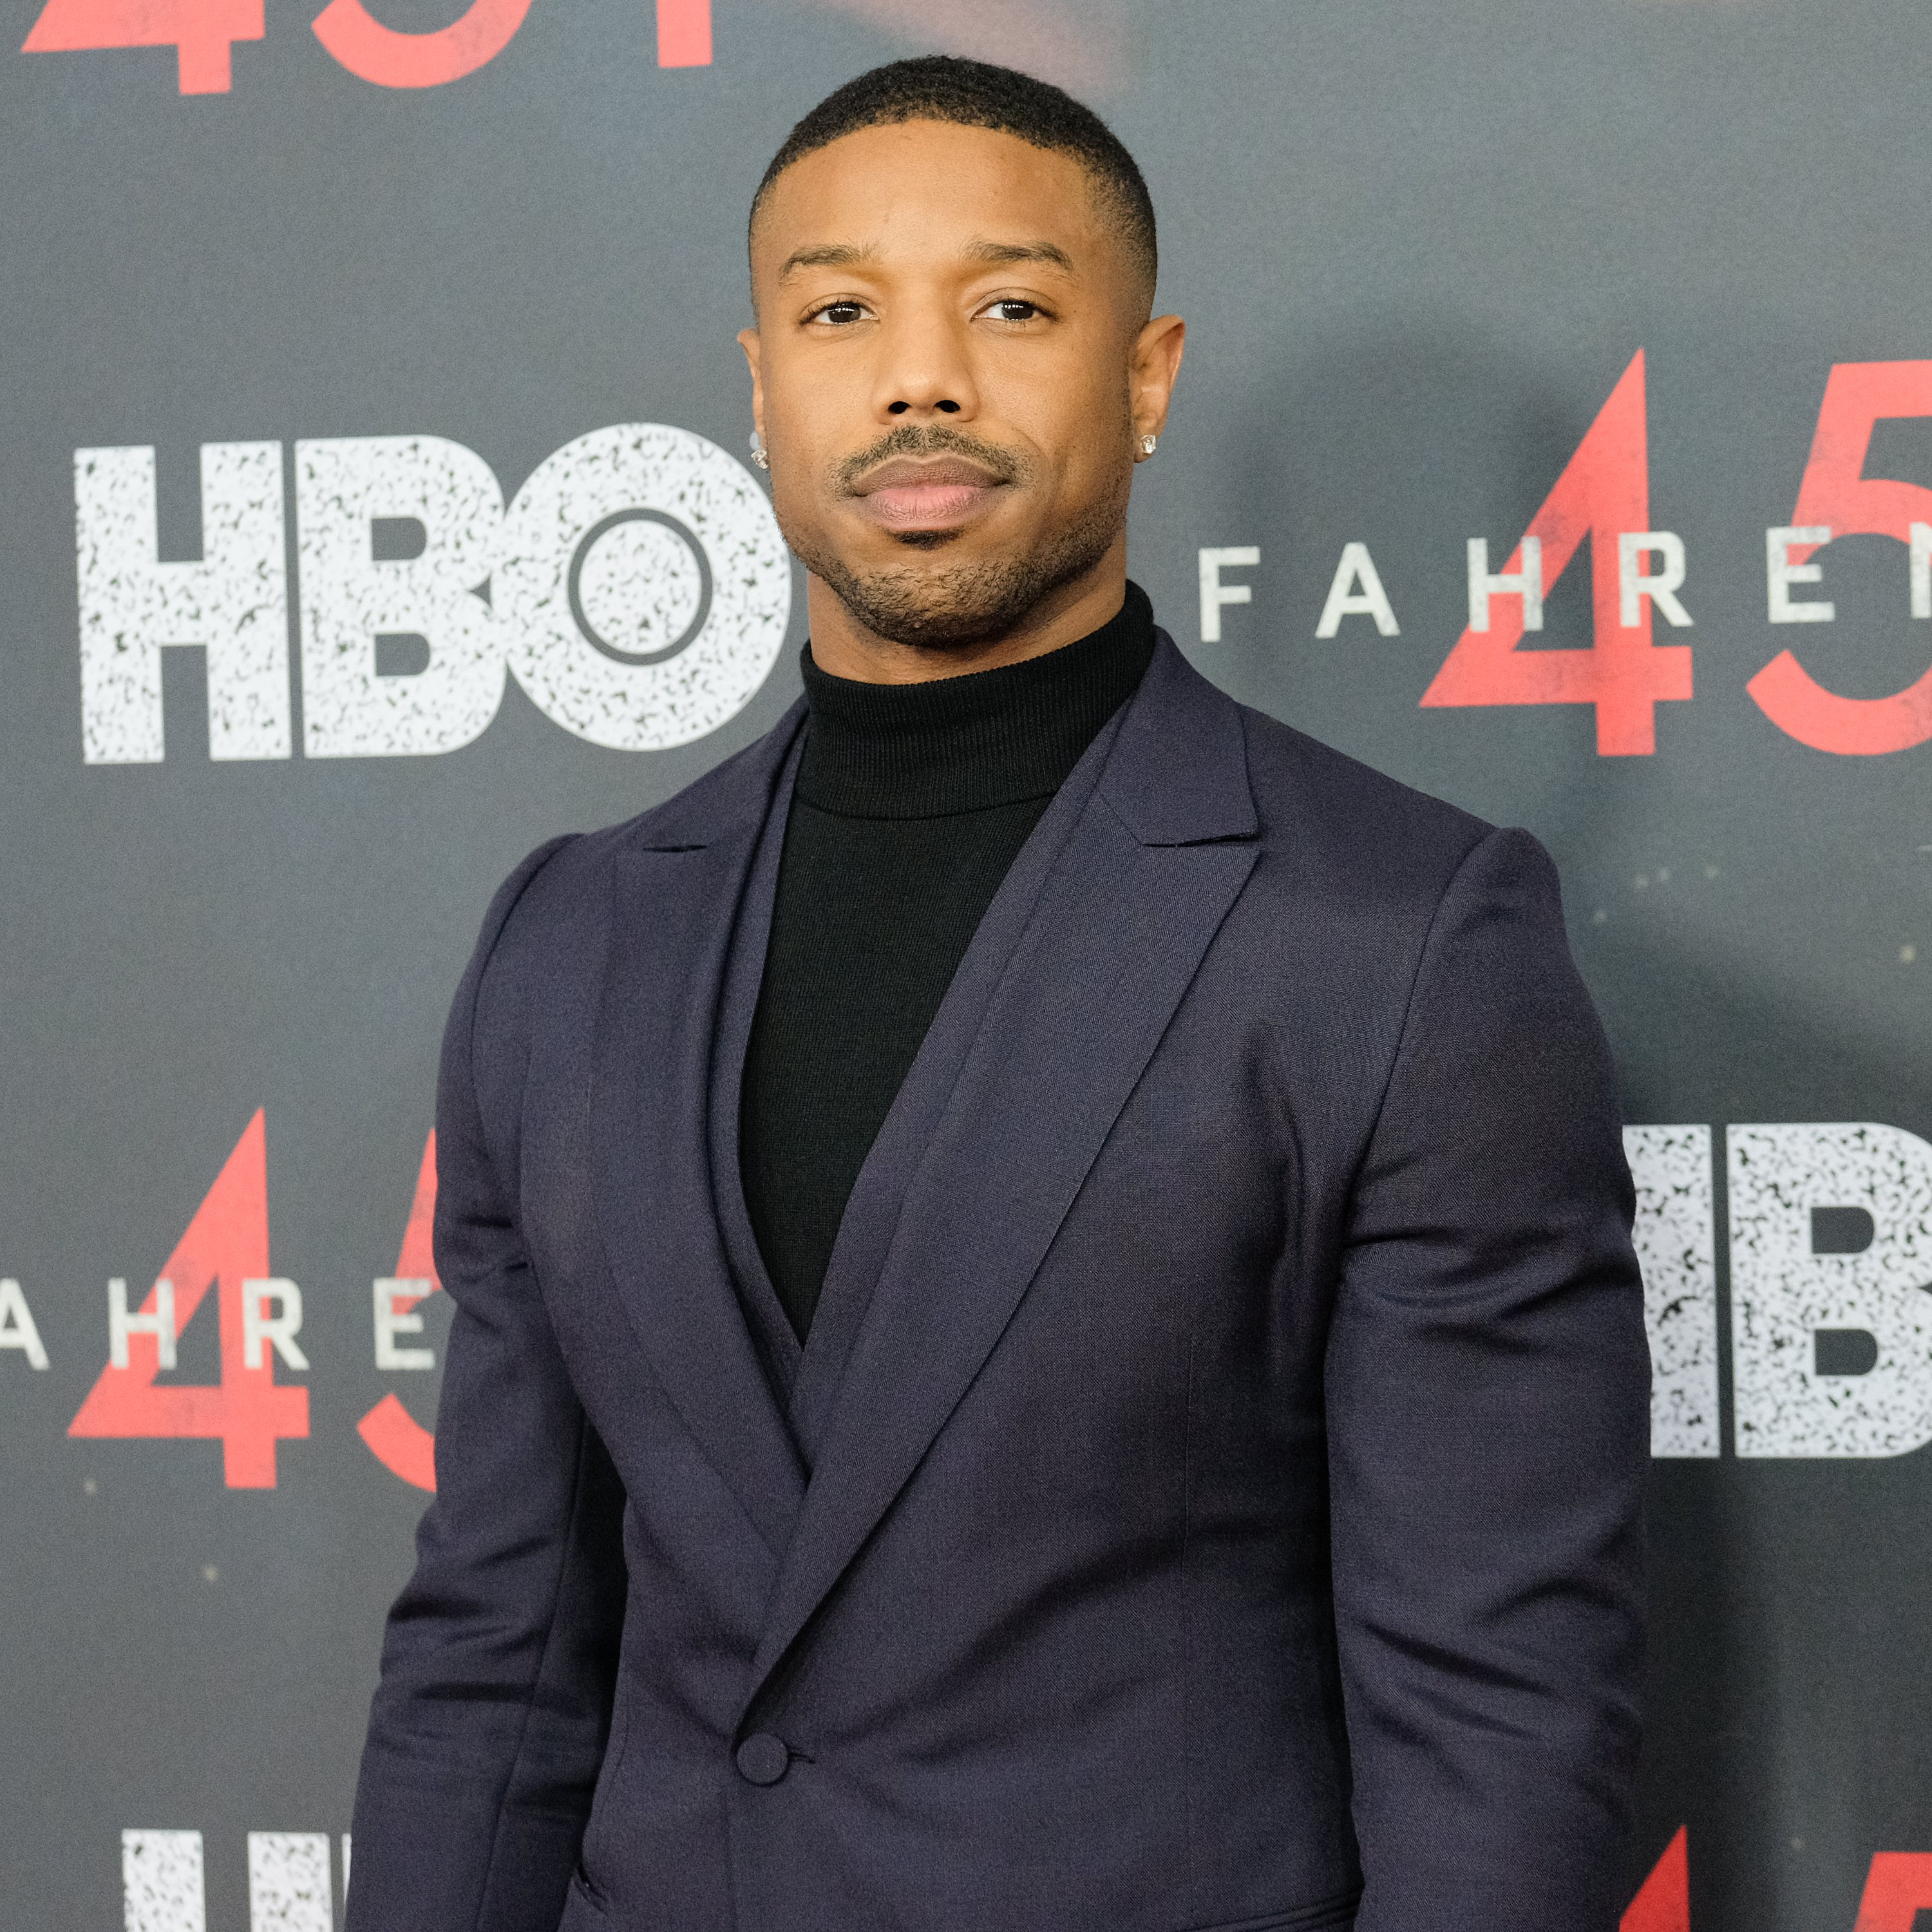 """Michael B. Jordan at the """"Fahrenheit 451"""" premiere on May 8, 2018 in New York City. 